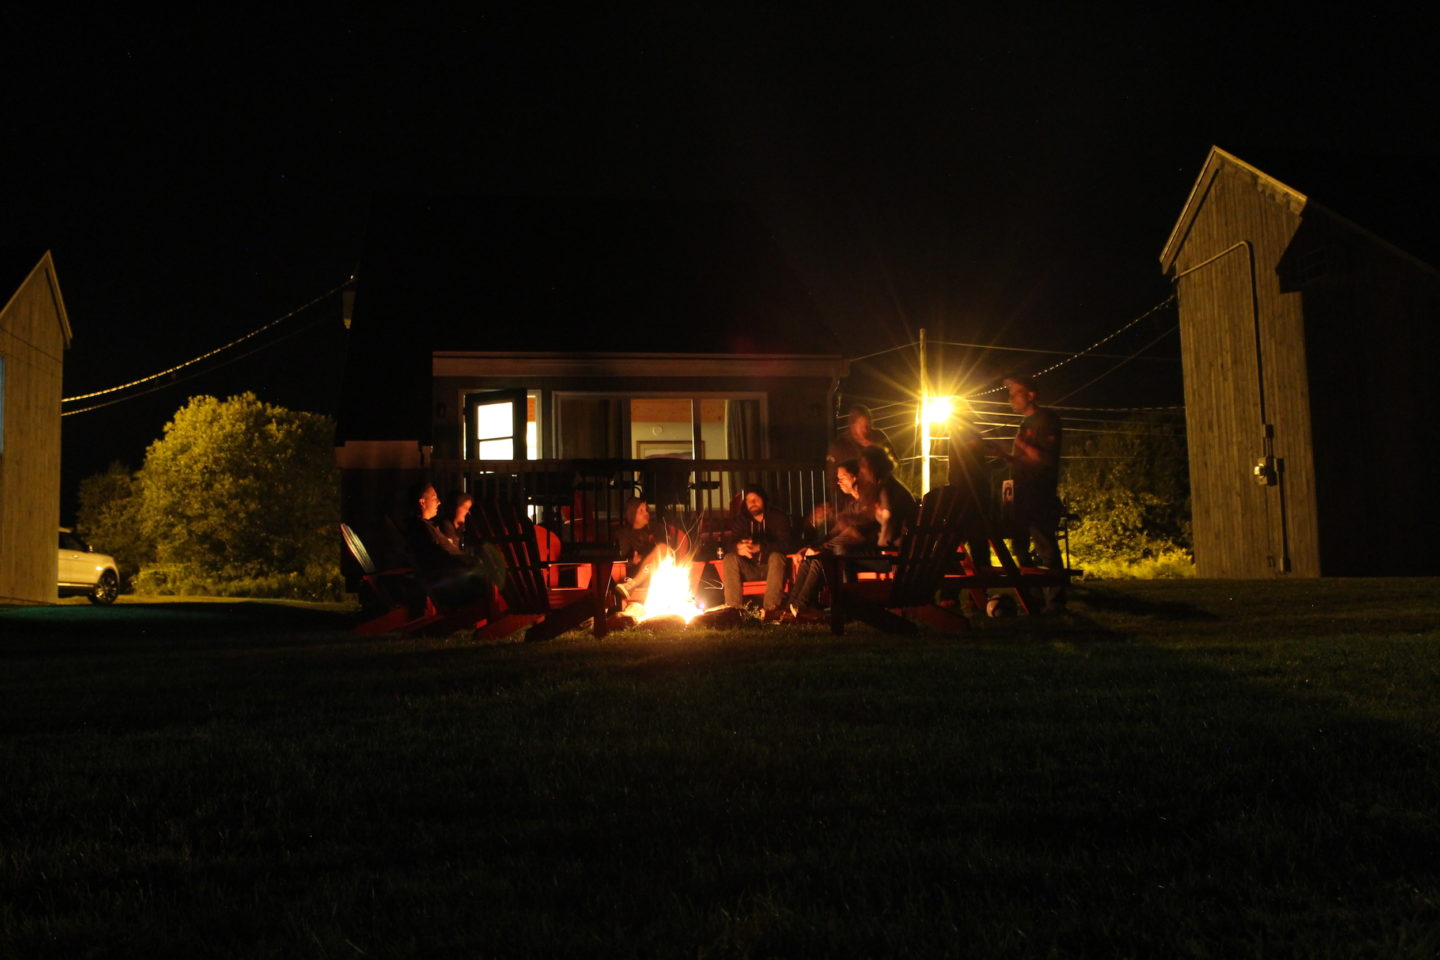 The team gathered around a bonfire